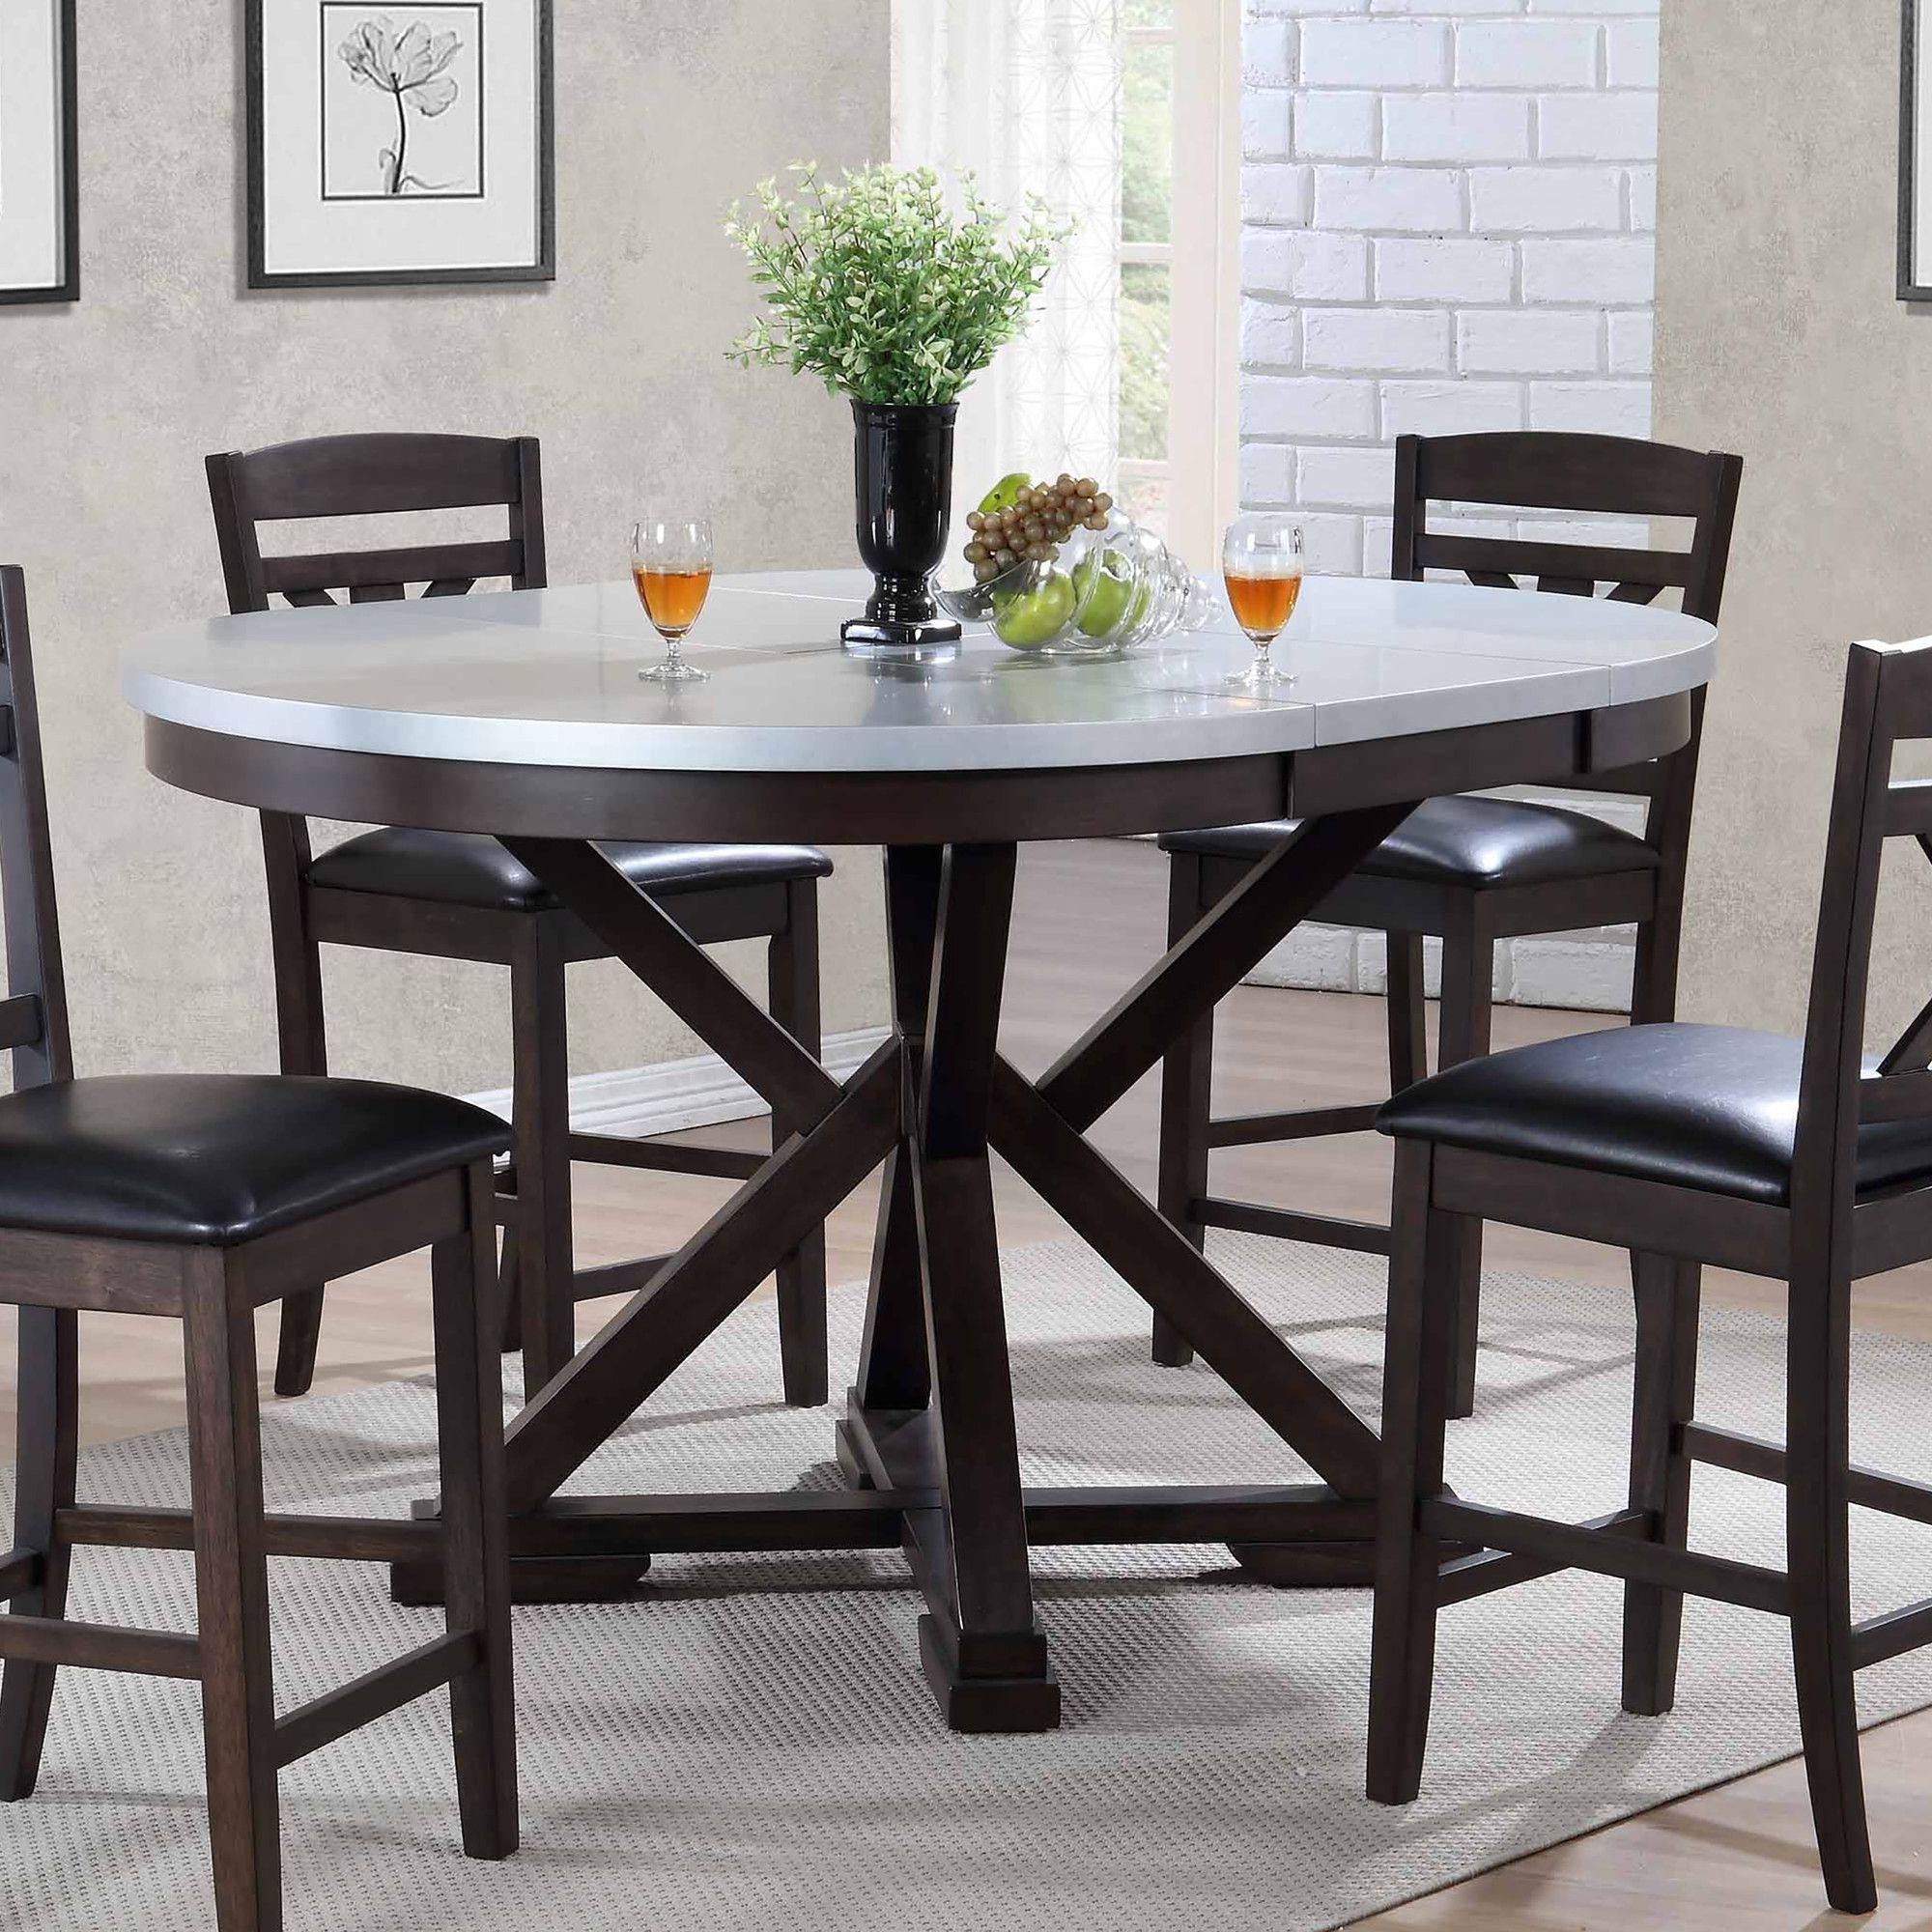 Hamilton Uv Counter Height Dining Table